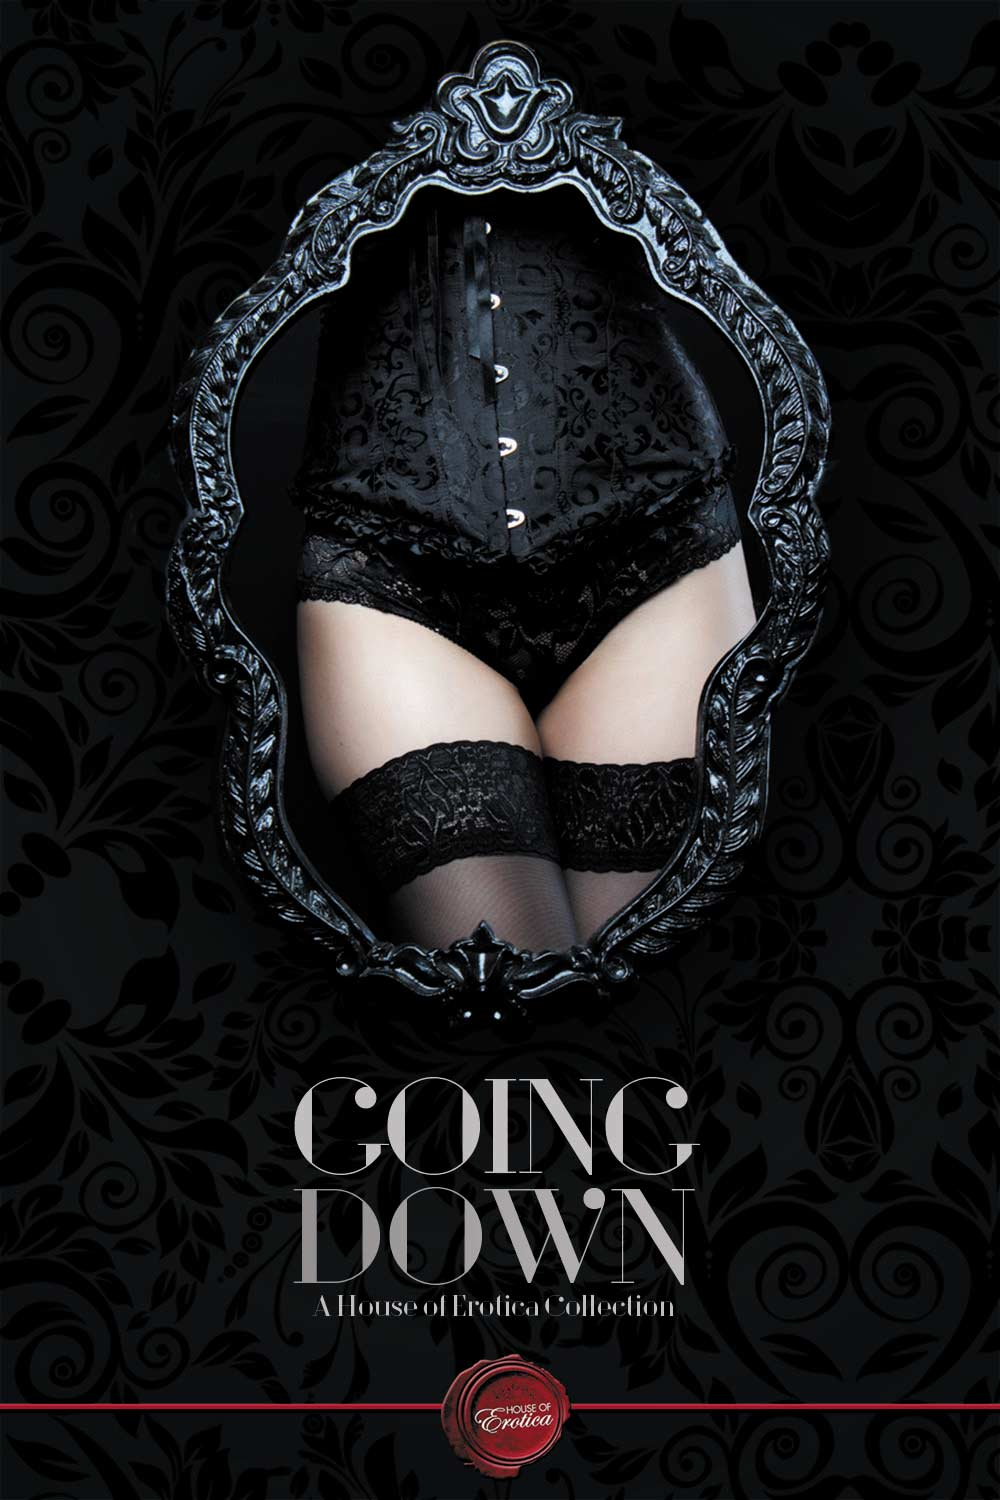 Going Down anthology cover